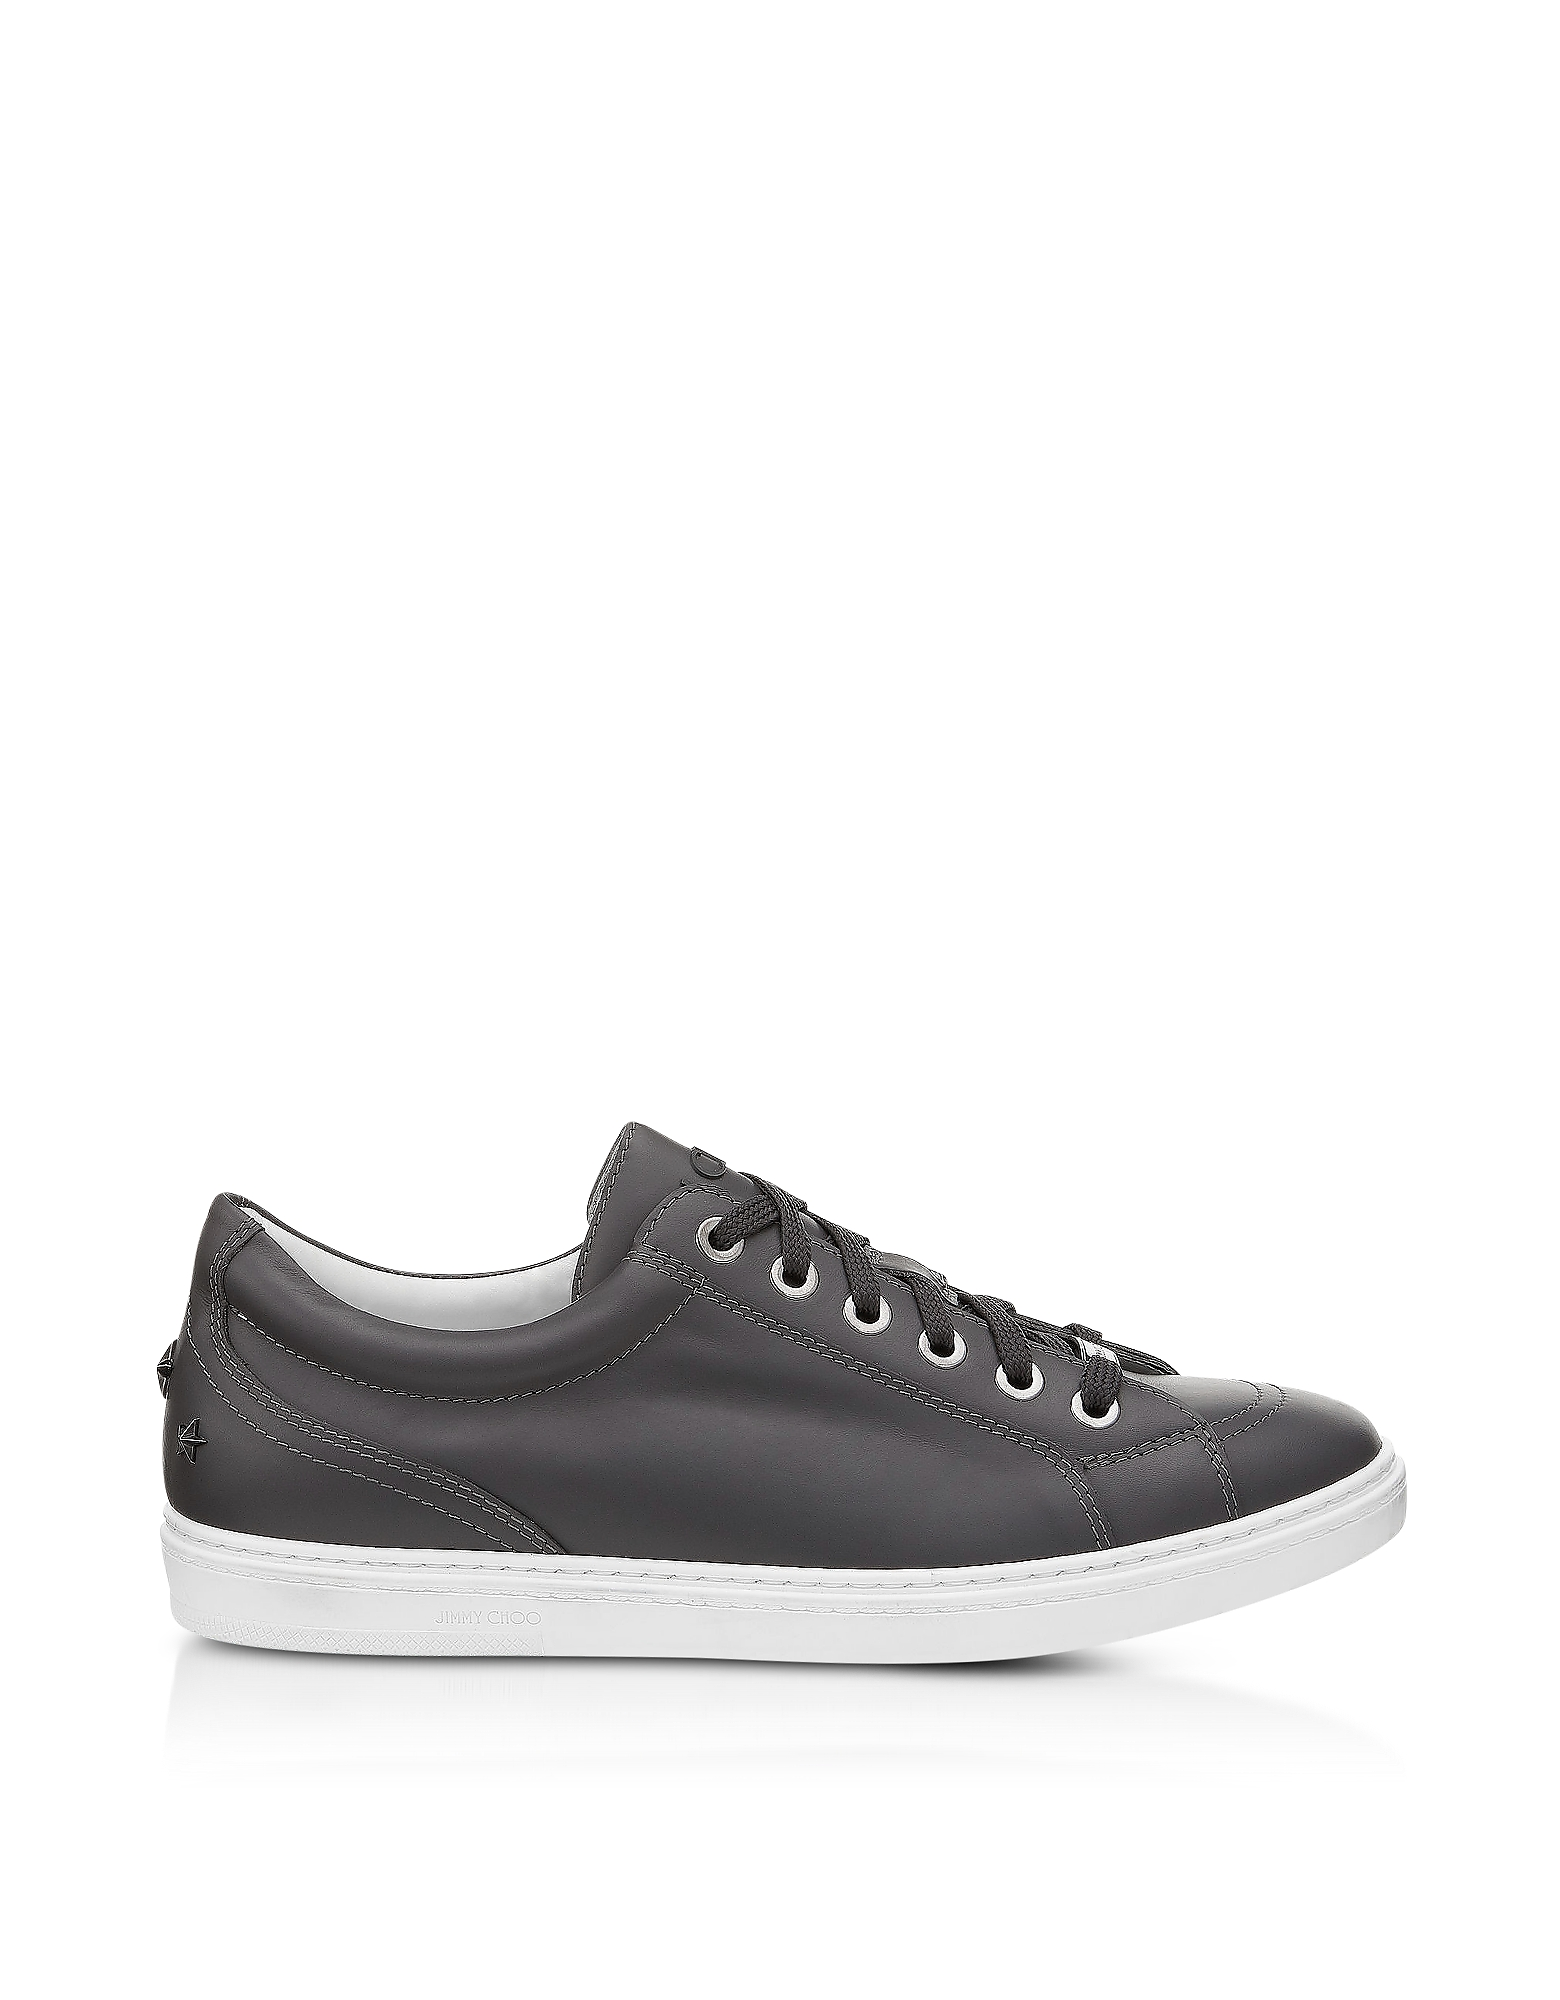 Jimmy Choo Shoes, Cash SML Slate Leather Low Top Sneakers w/Studded Stars